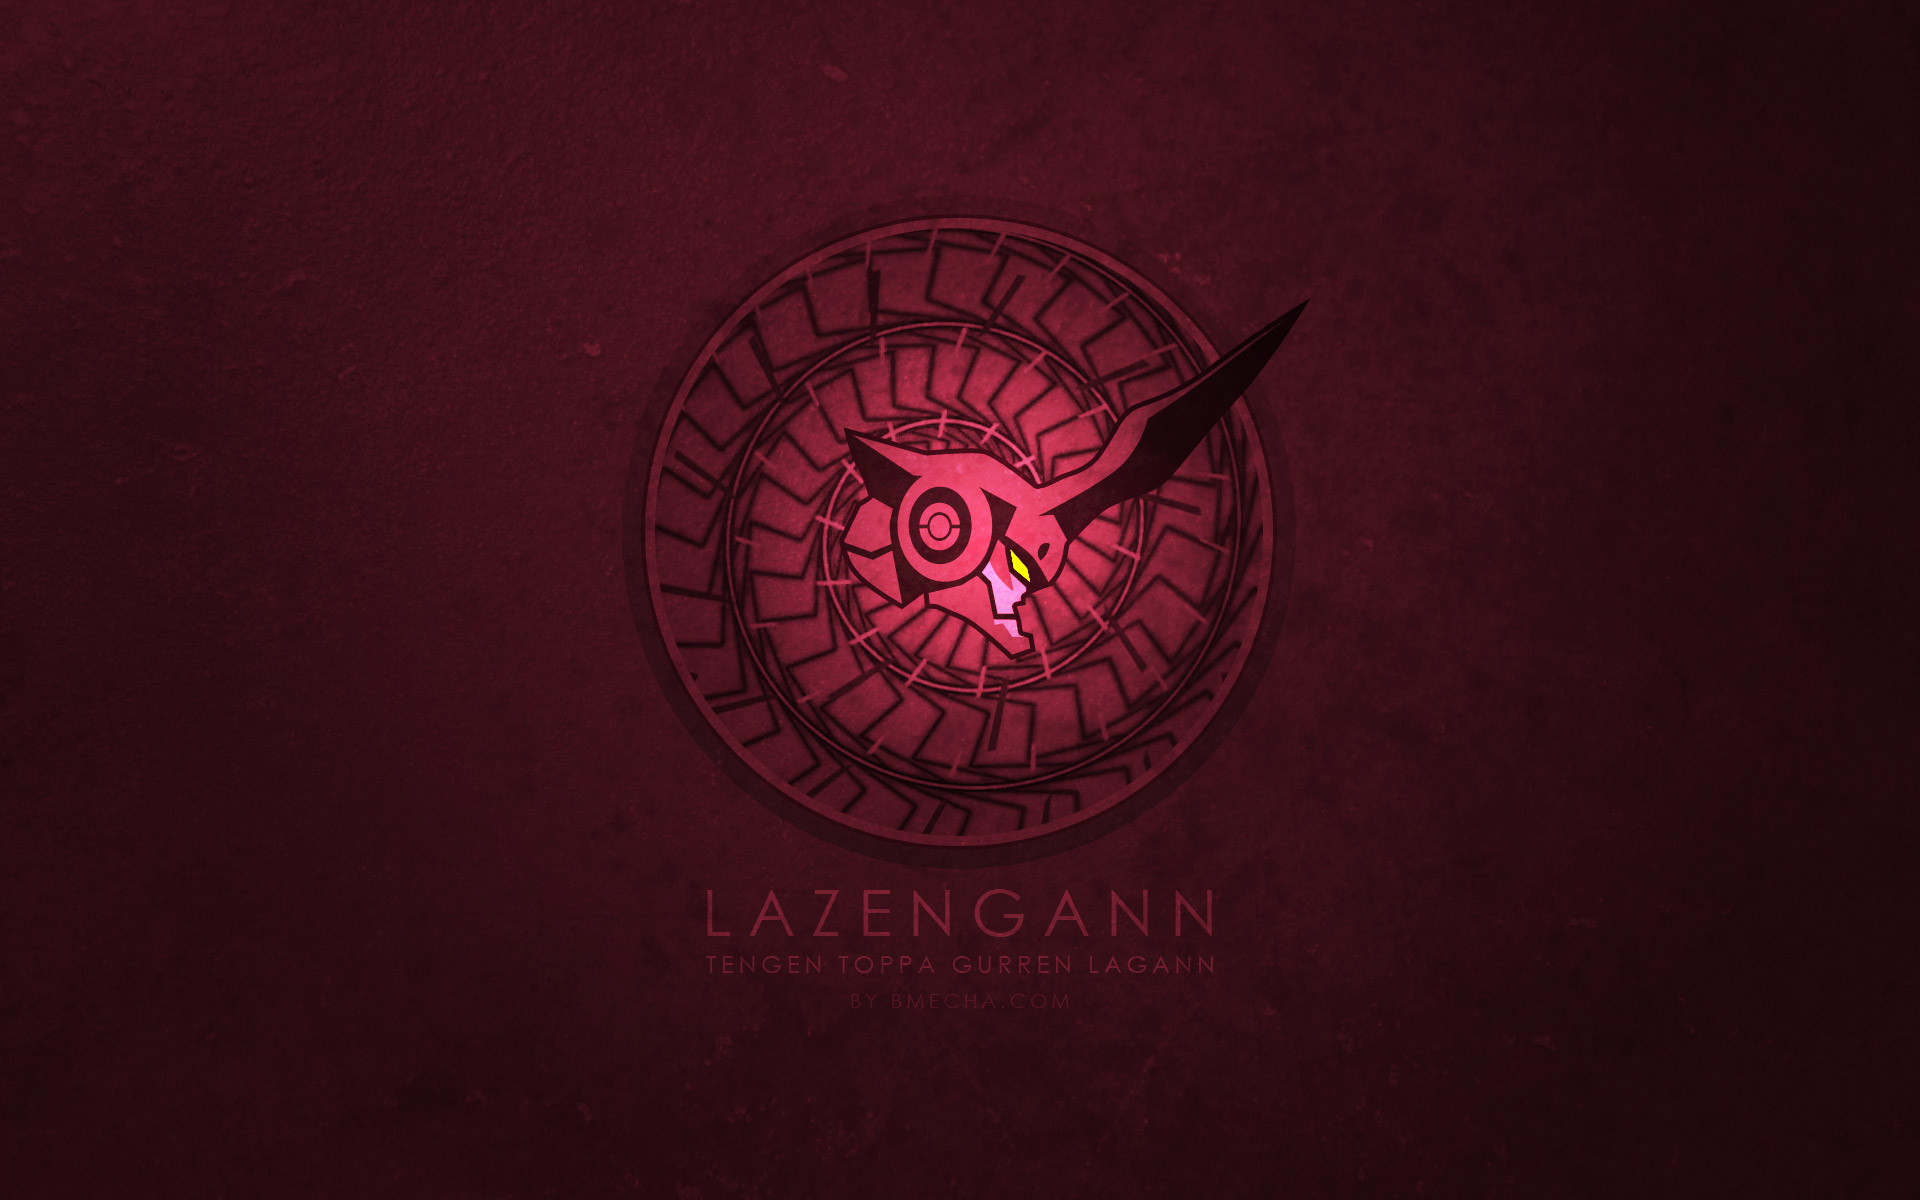 1920x1200 Lazengann 1900x1200 Wallpaper